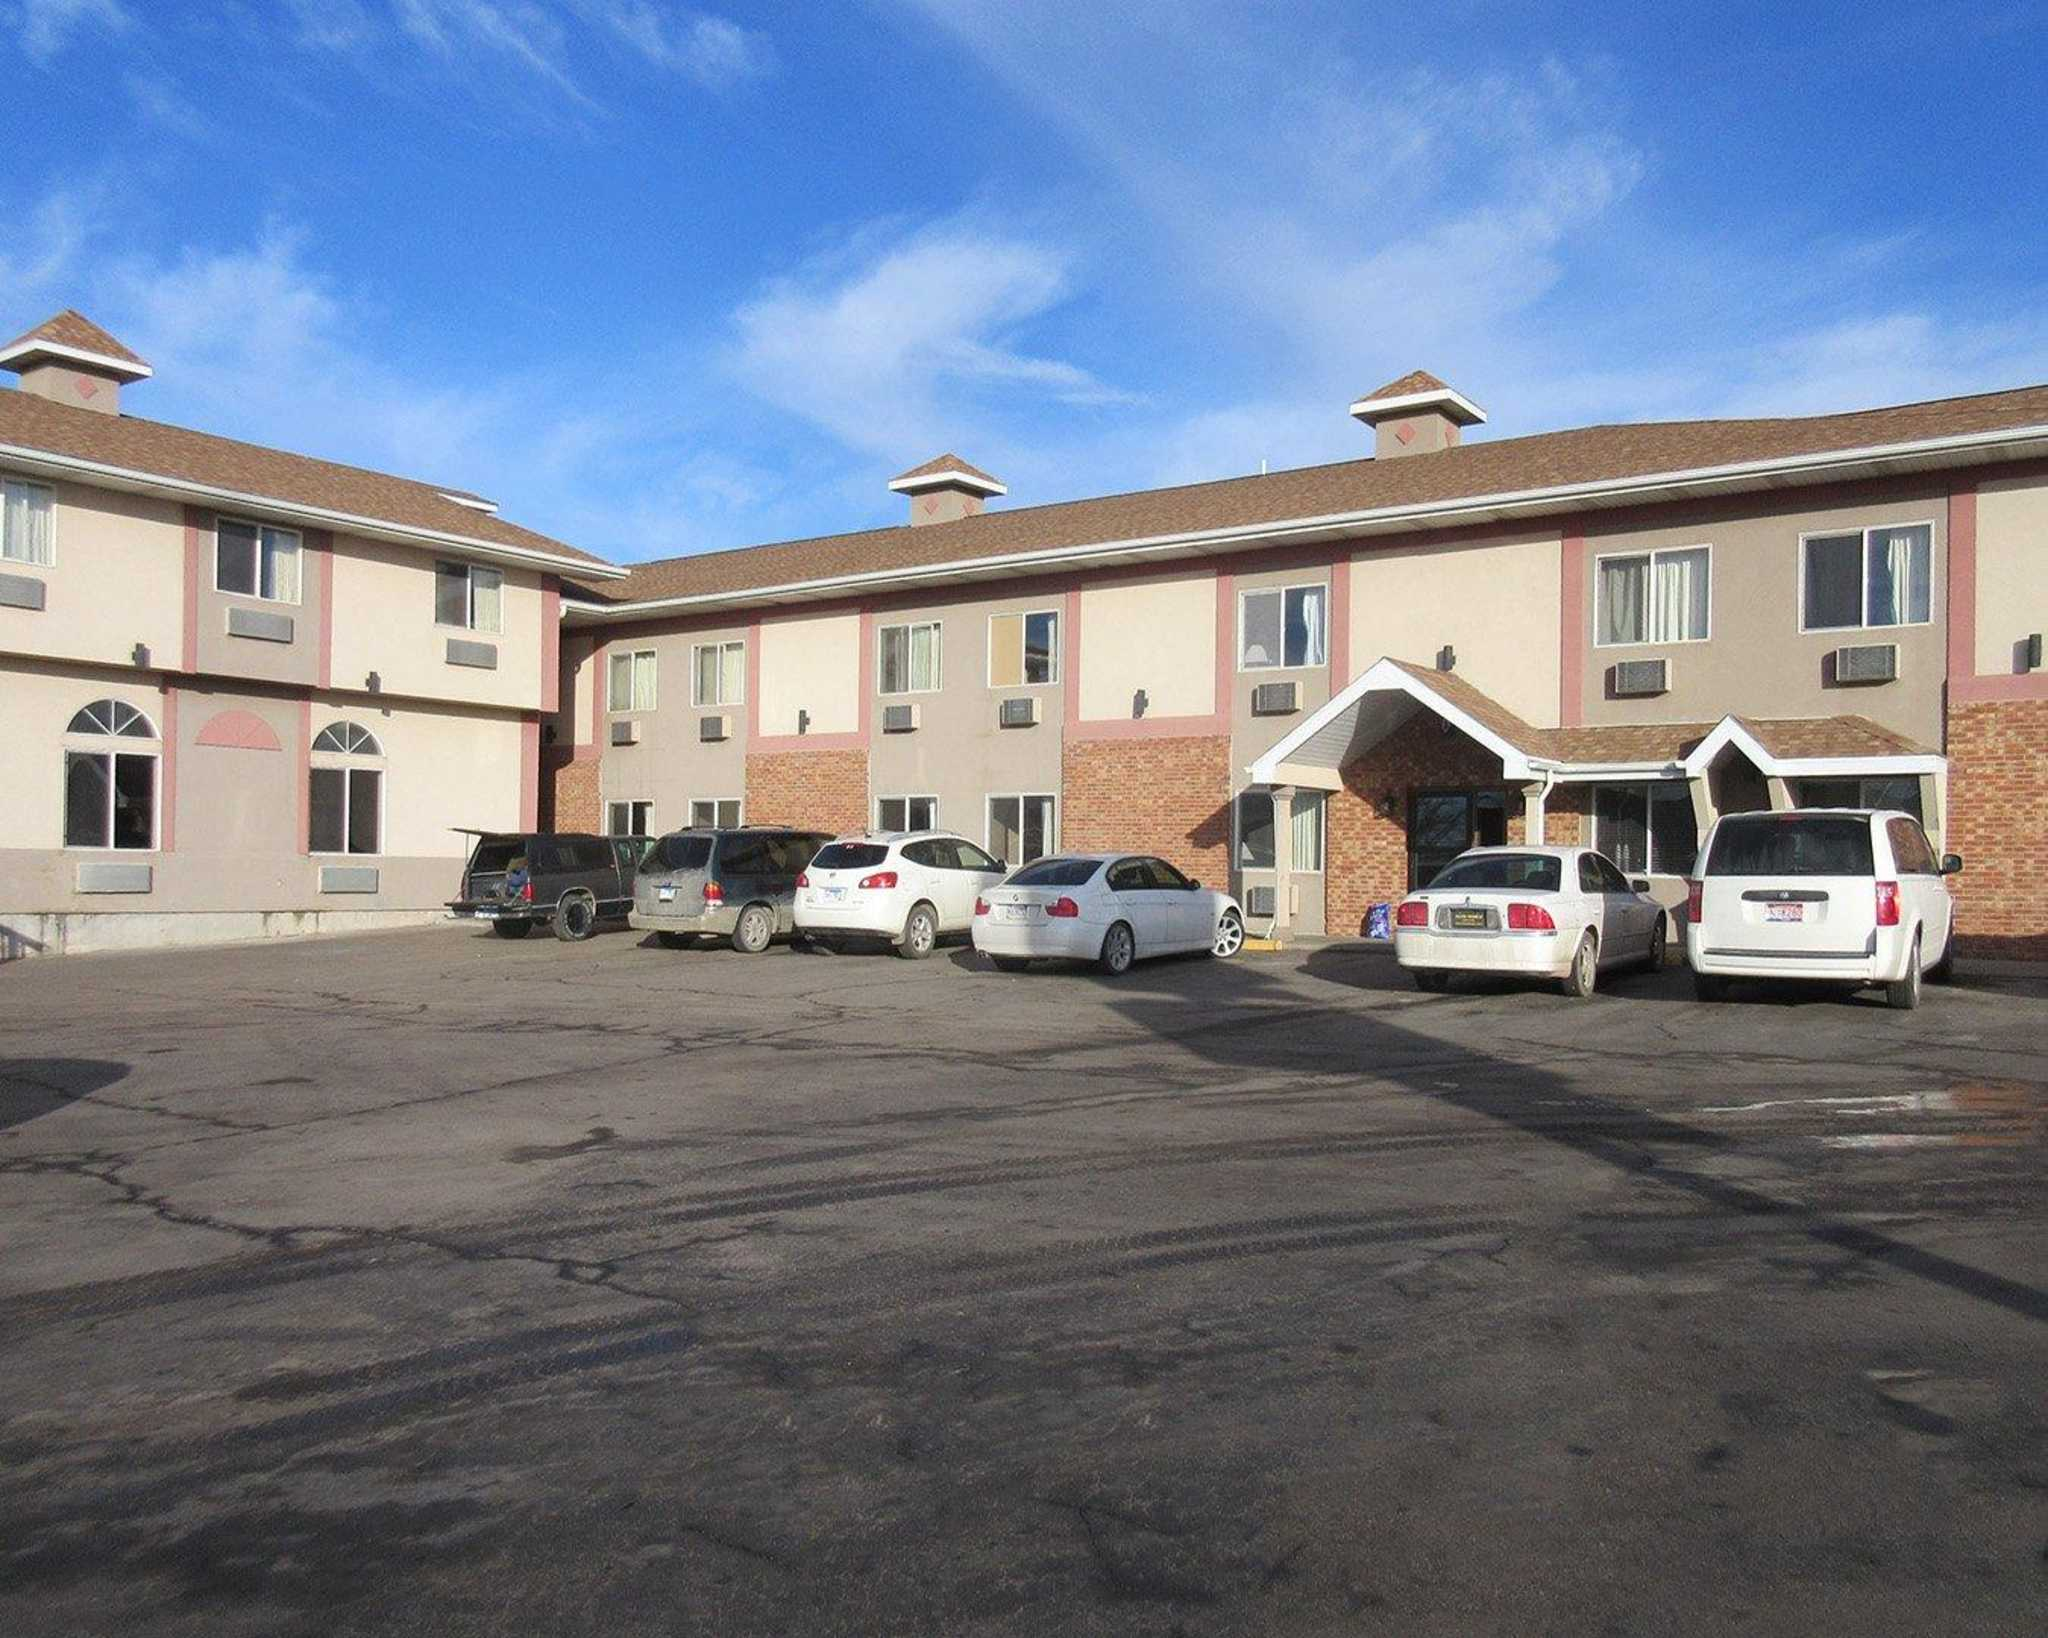 Rodeway Inn At 1313 N Lacrosse St Rapid City Sd On Fave